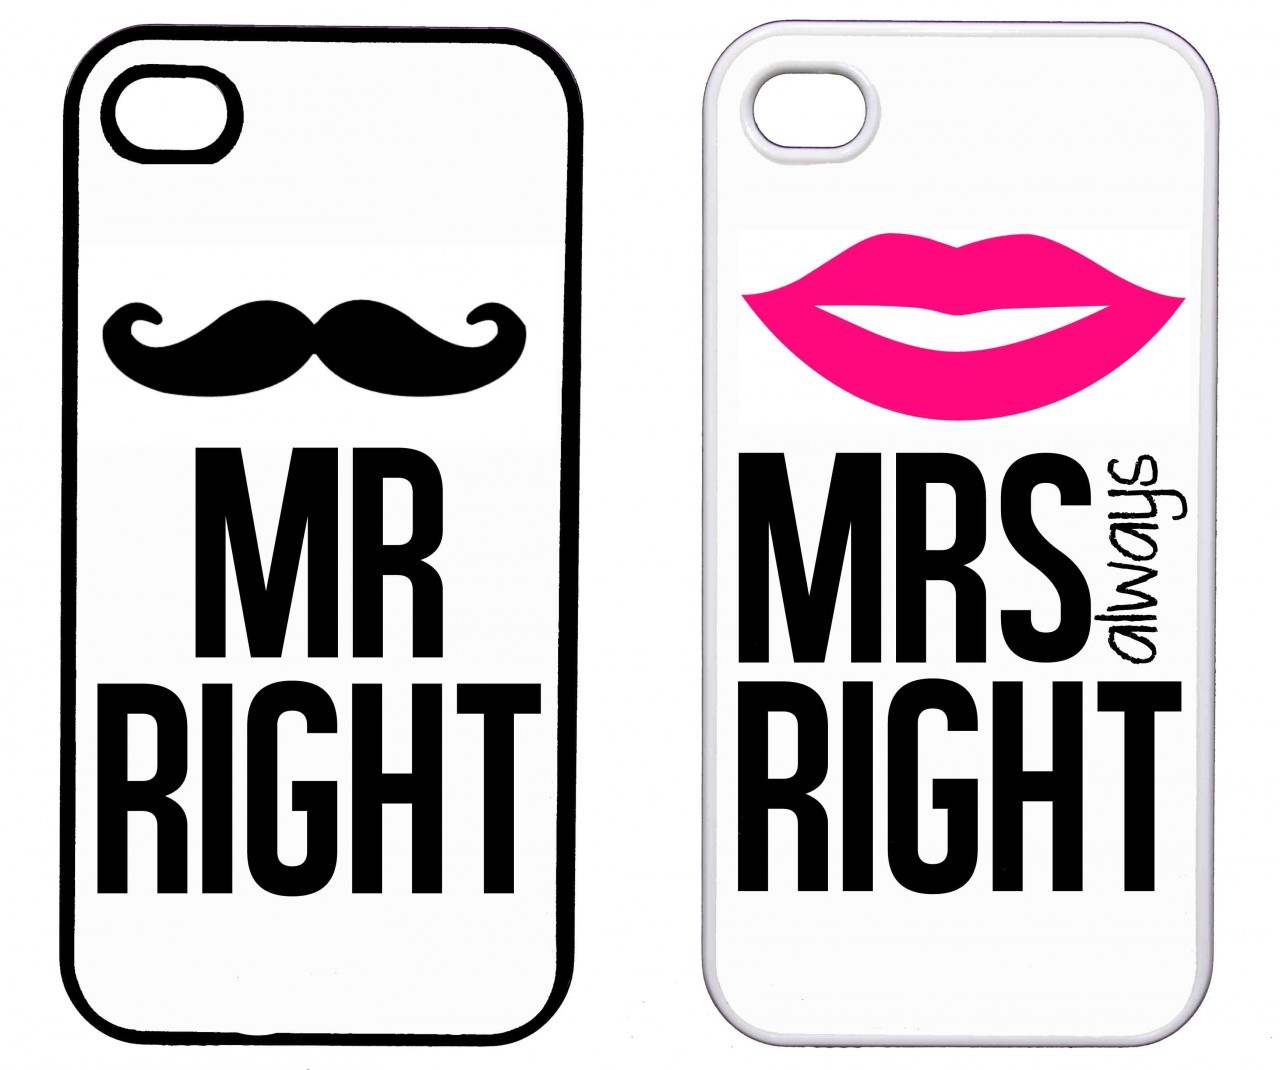 mr_right_and_mrs_always_right_set_of_2_iphone_cases__76014-1345025388-1280-1280